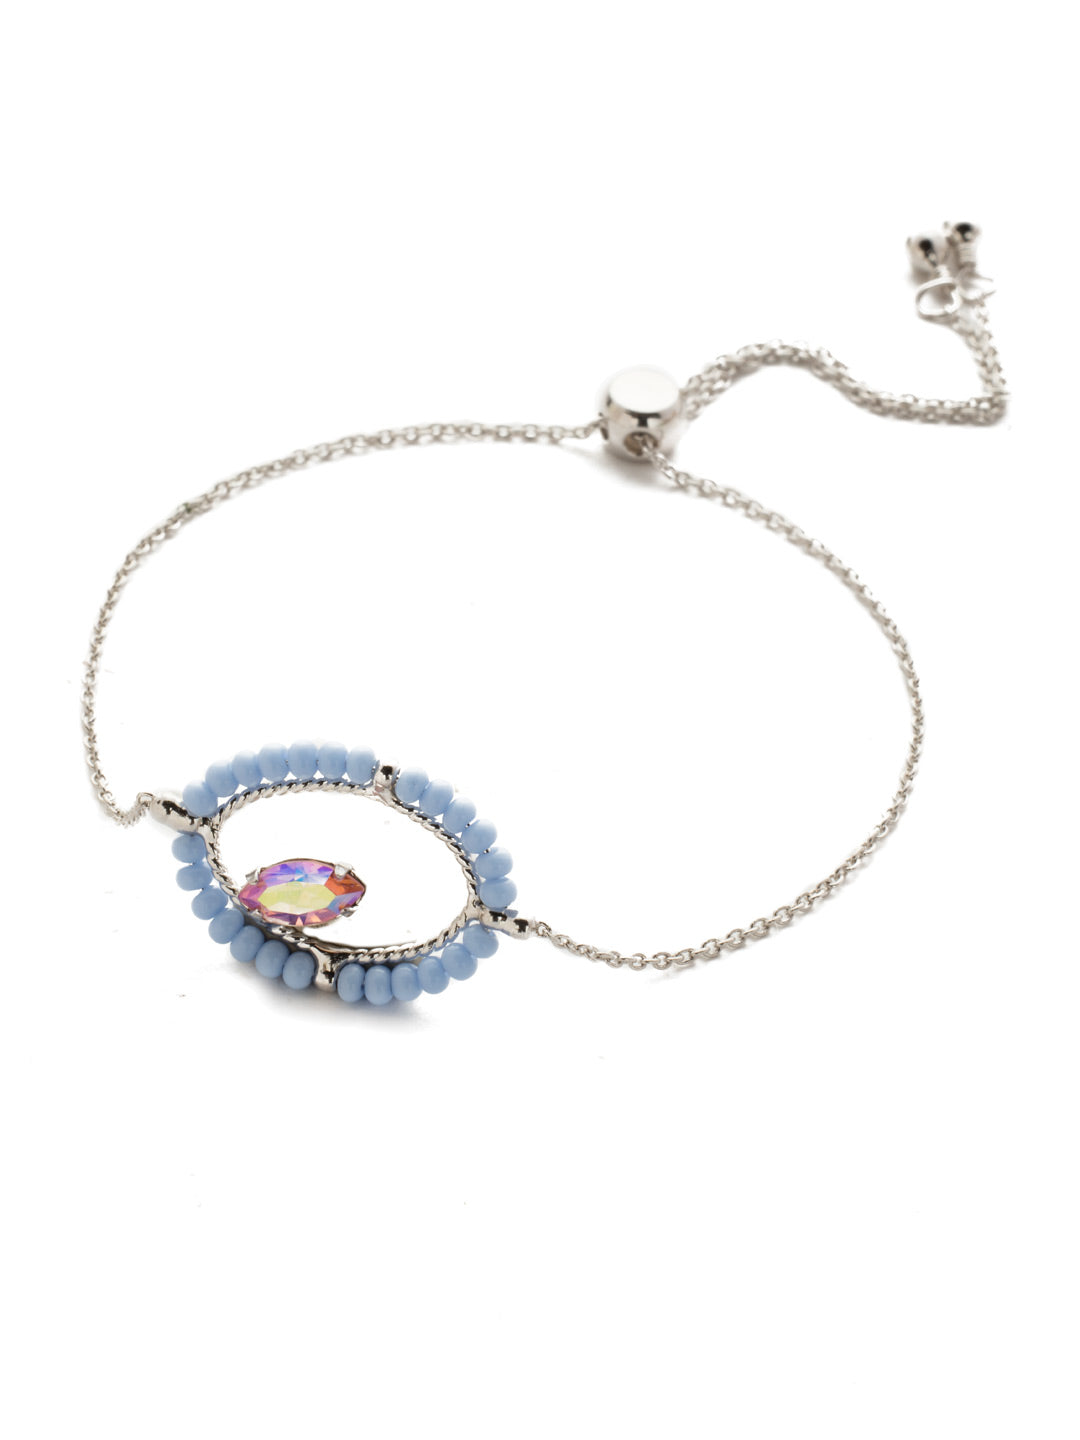 Eye of the Beholder Slider Bracelet - BEK34RHSSU